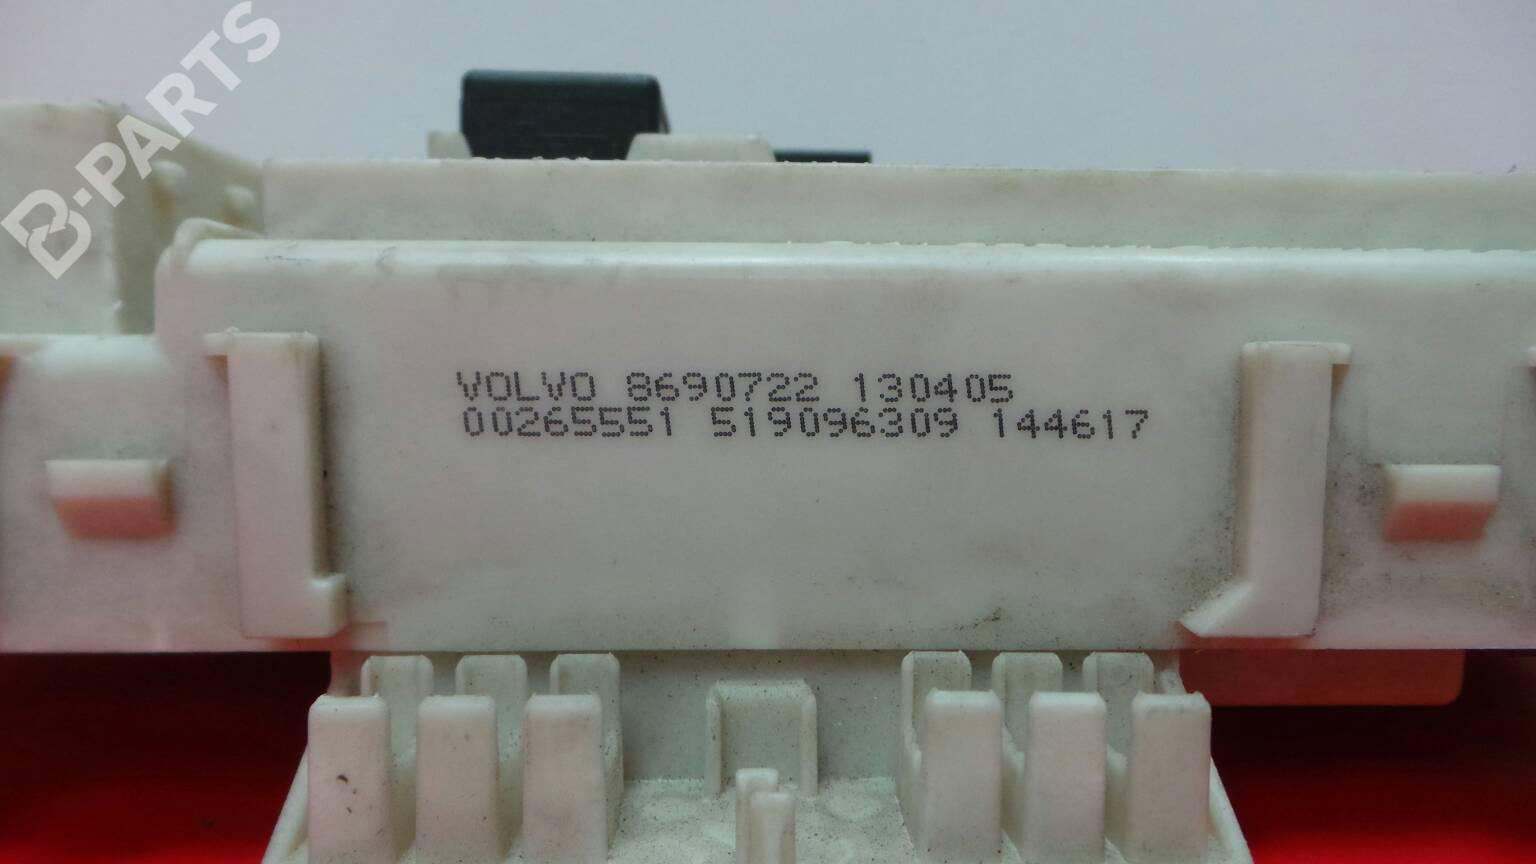 hight resolution of  fuse box 8690722 0 0265551 volvo s40 ii 544 2 0 d4